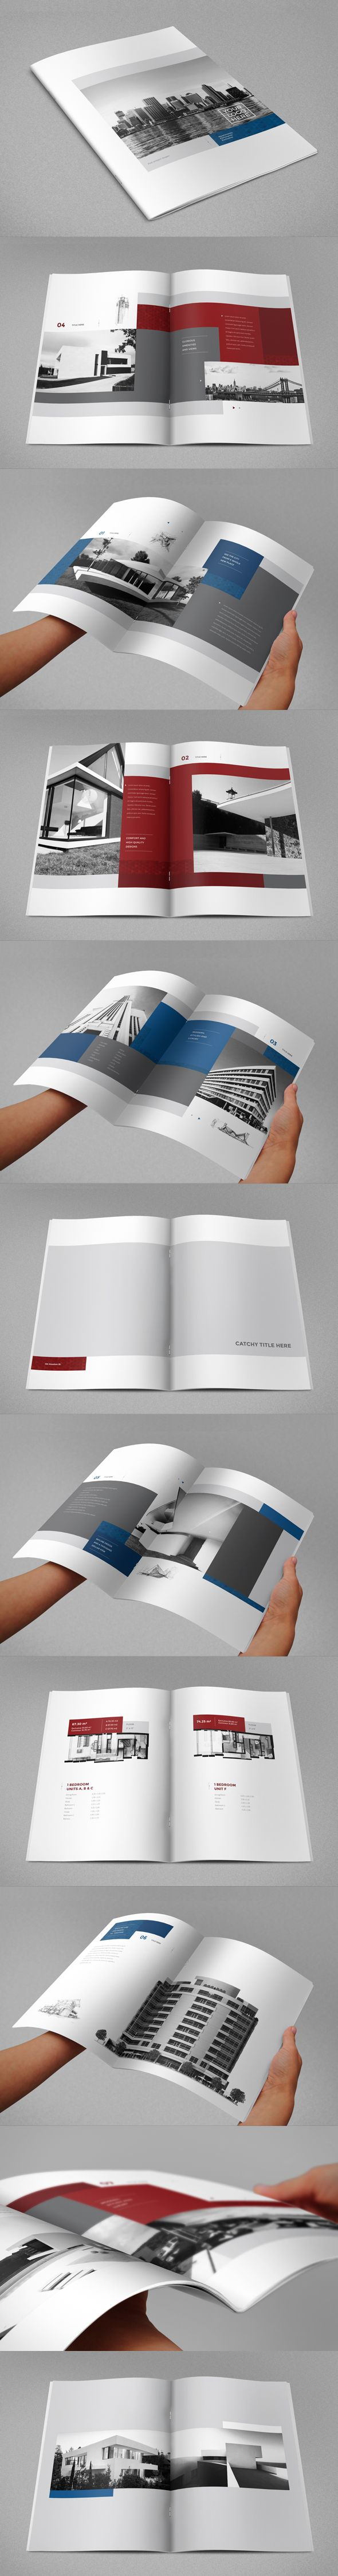 Real Estate Brochure 3. Download here: http://graphicriver.net/item/real-estate-brochure-3/8466289?ref=abradesign #design #brochure